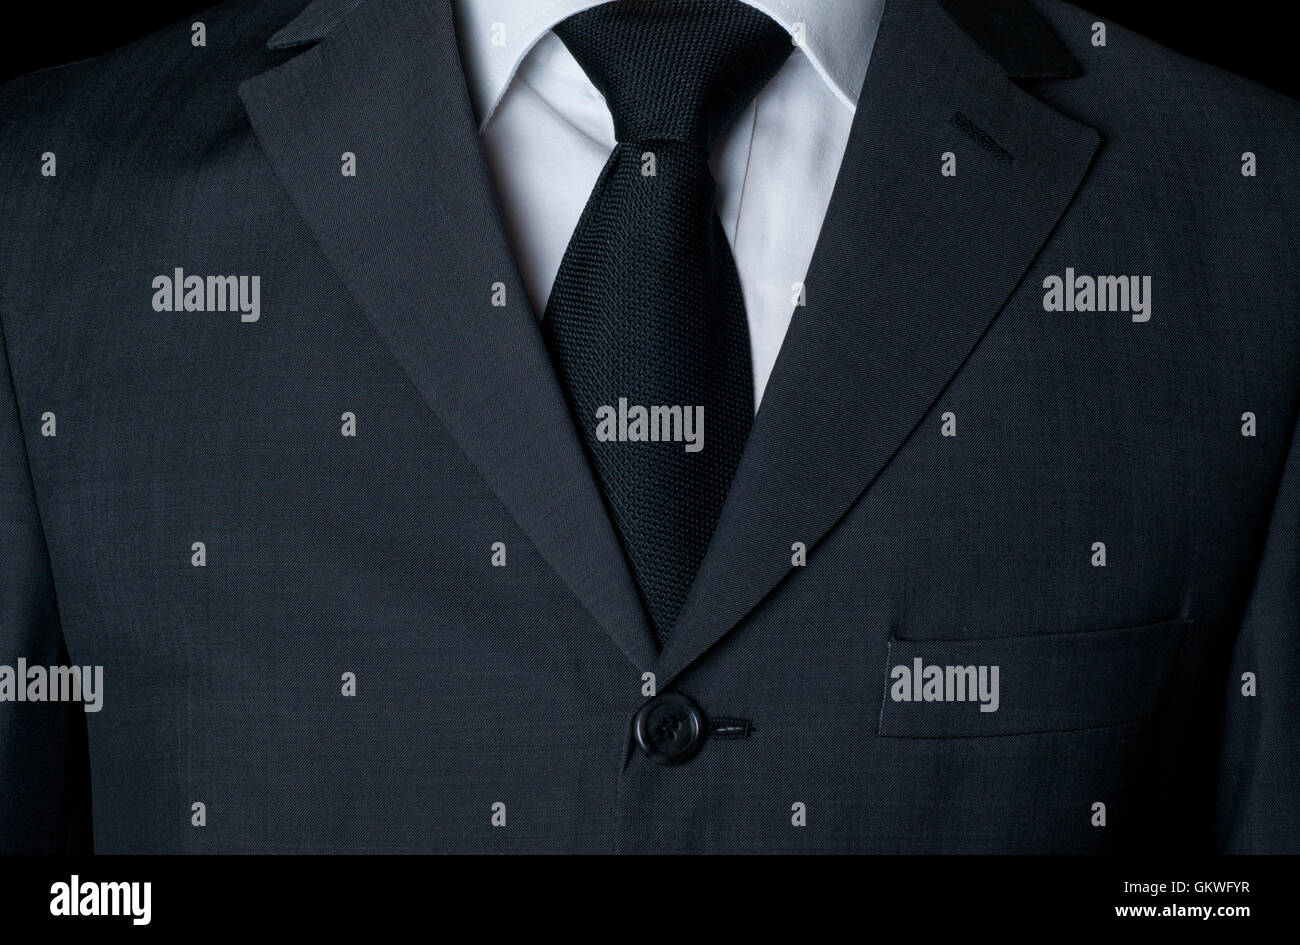 Dark business suit with a tie - Stock Image